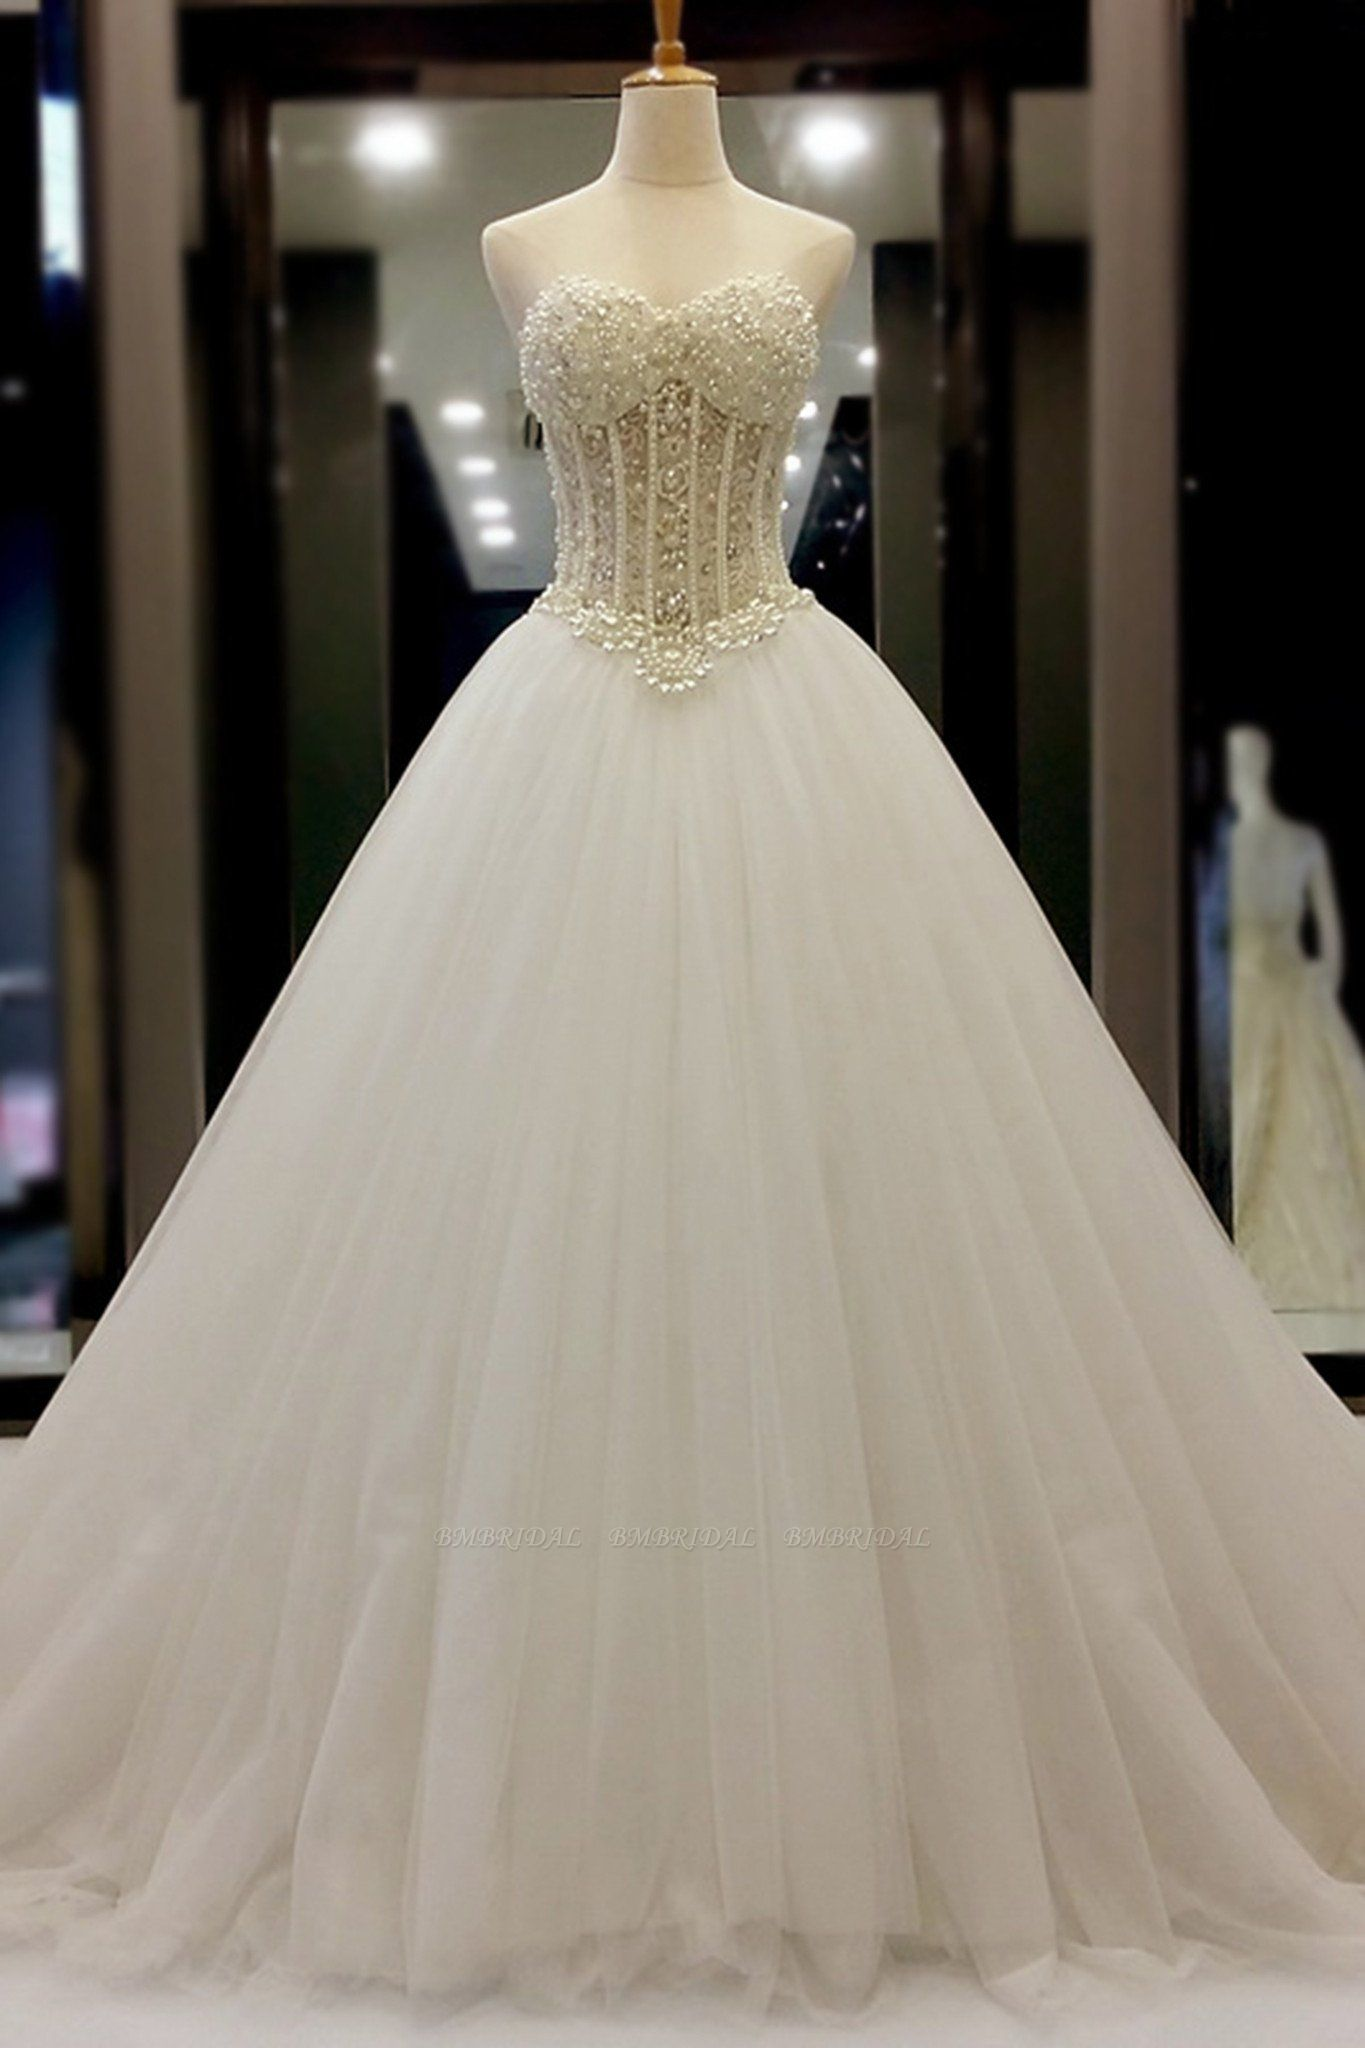 BMbridal AffordableWhite Organza Pearl A-Line Wedding Dresses Sweetheart Beading Bridal Gowns On Sale